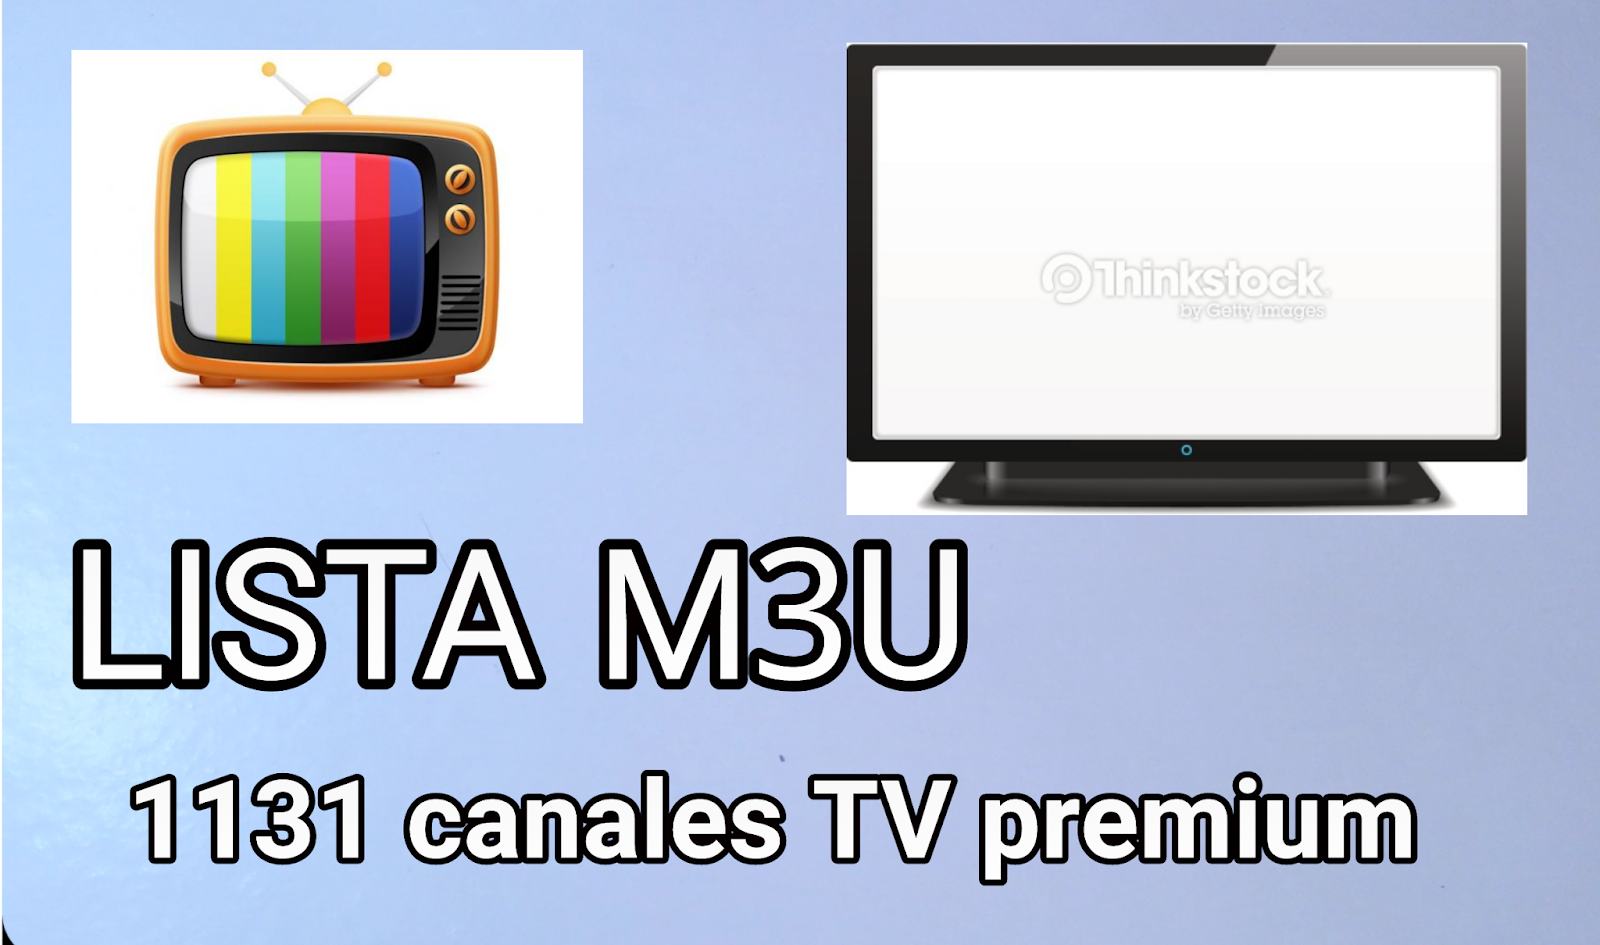 1131 CANALES DE TV PREMIUM - PHONE GEEK TV ANDROID